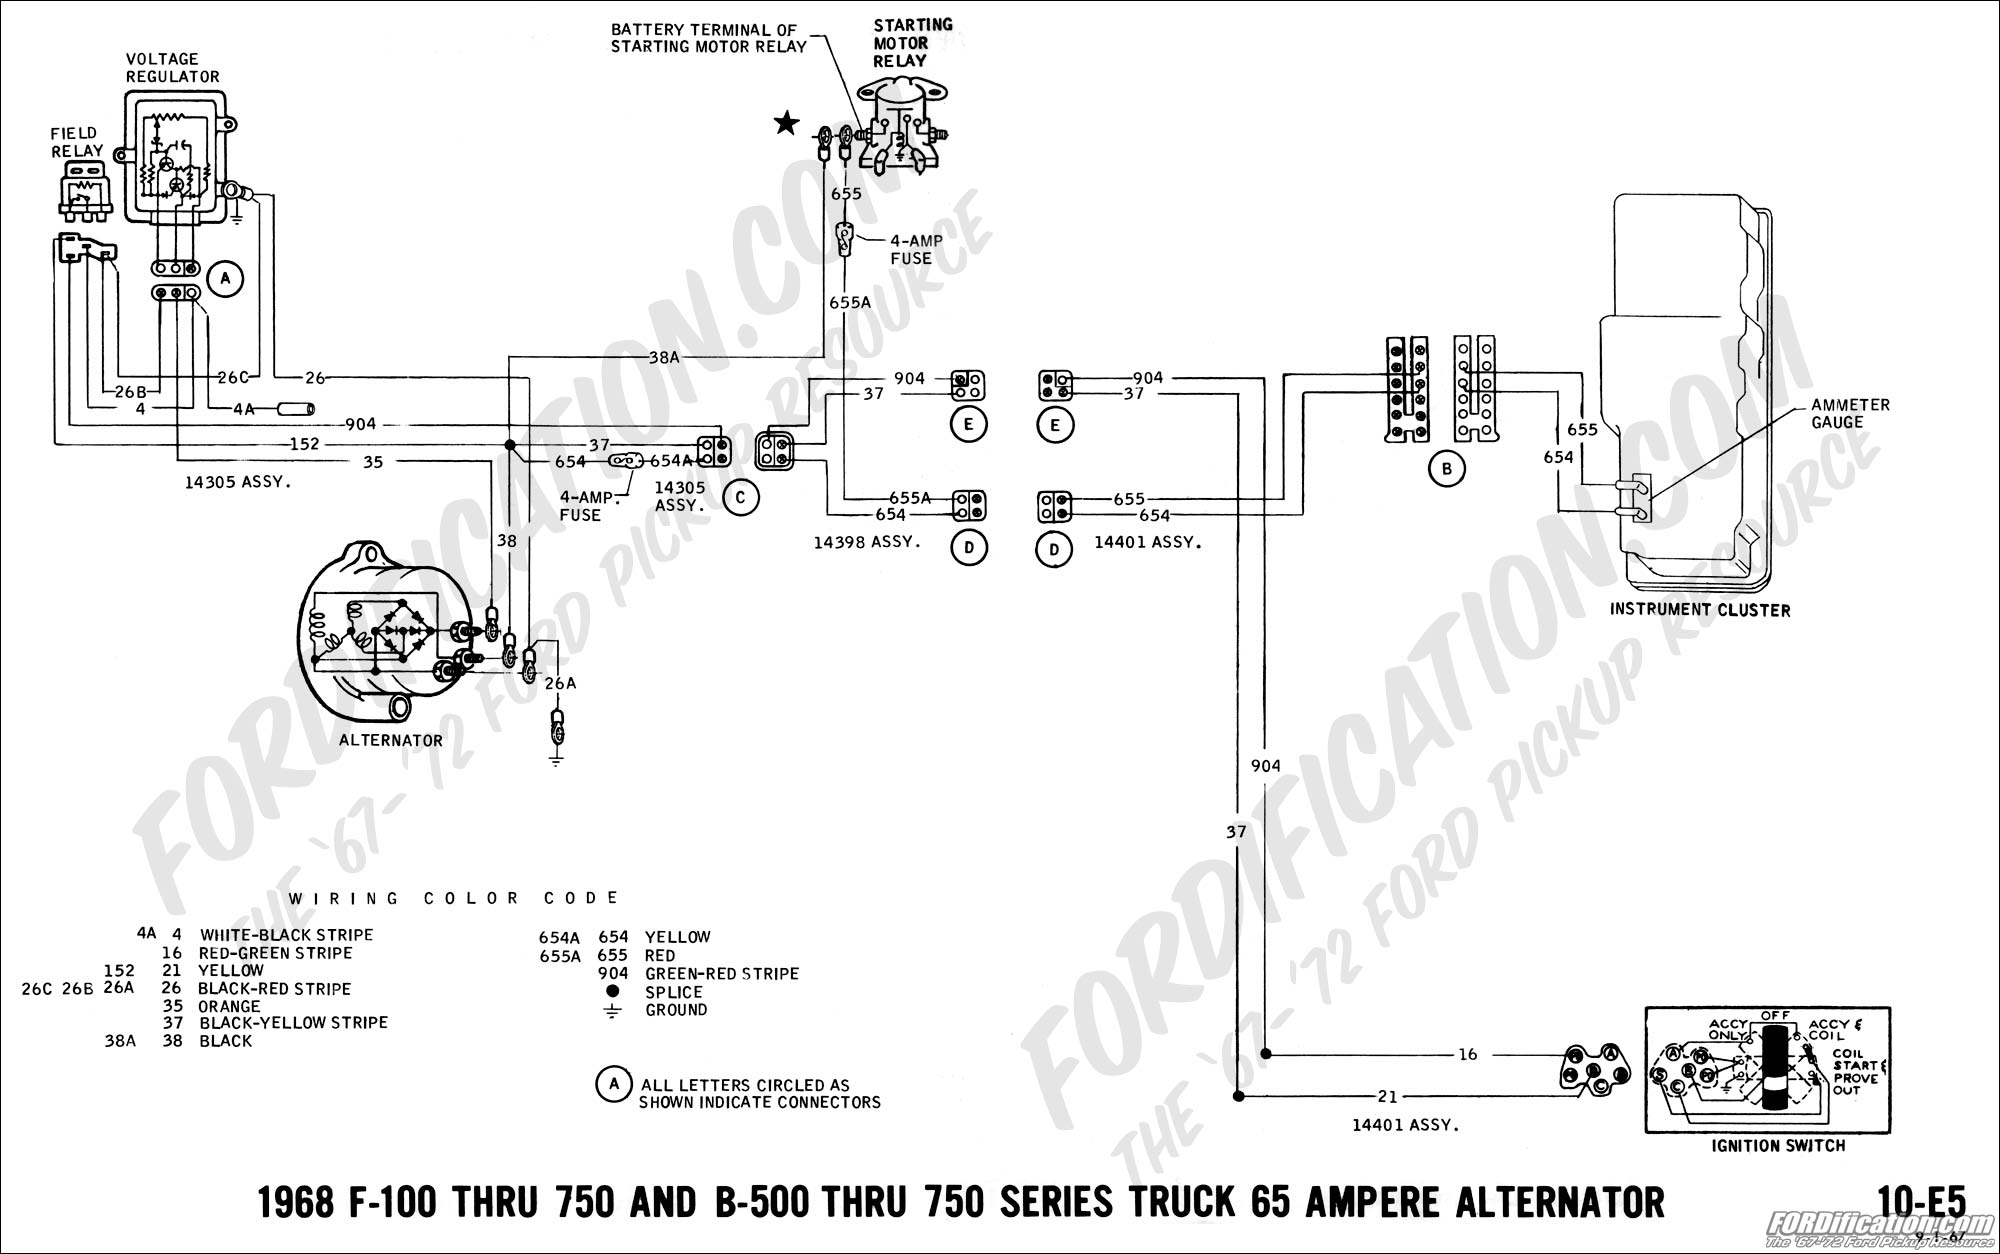 68 ford f100 wiring diagram - 900x sony xplod wiring diagram for wiring  diagram schematics  wiring diagram schematics